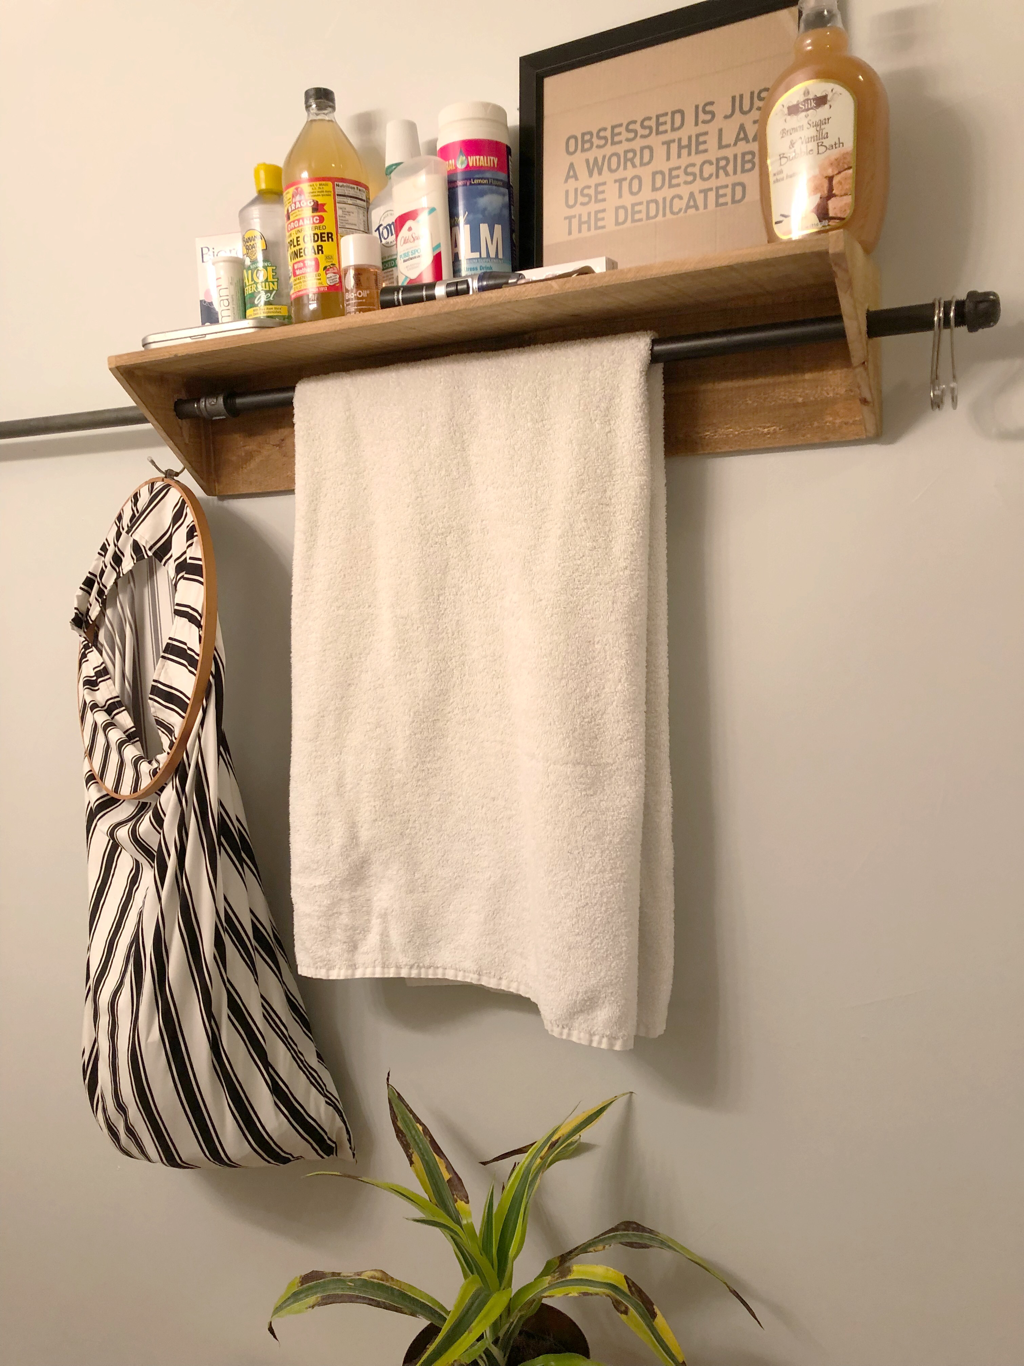 DIY bathroom renovation with towel rack and organization cart.